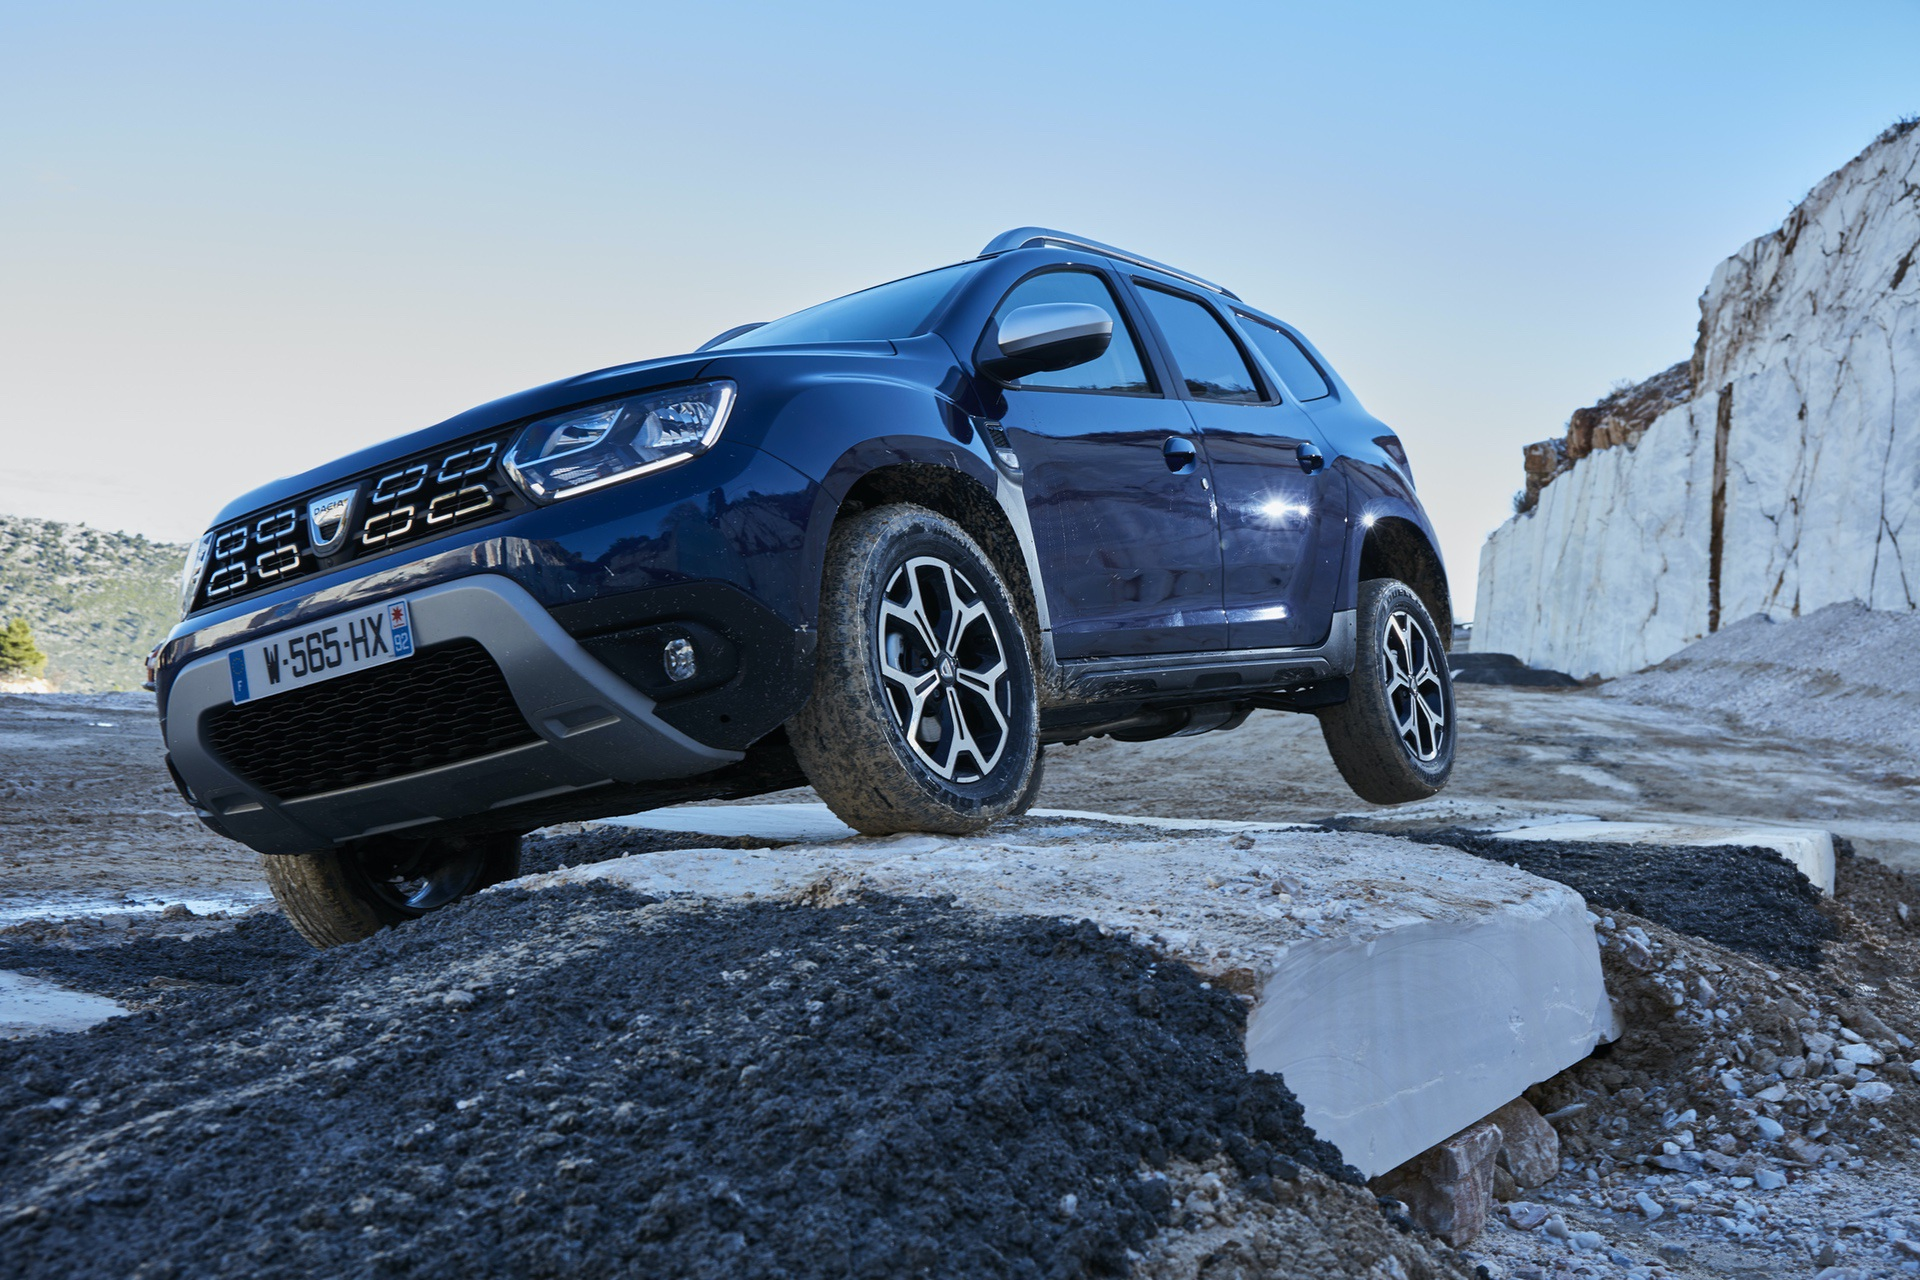 First_Drive_Dacia_Duster_028